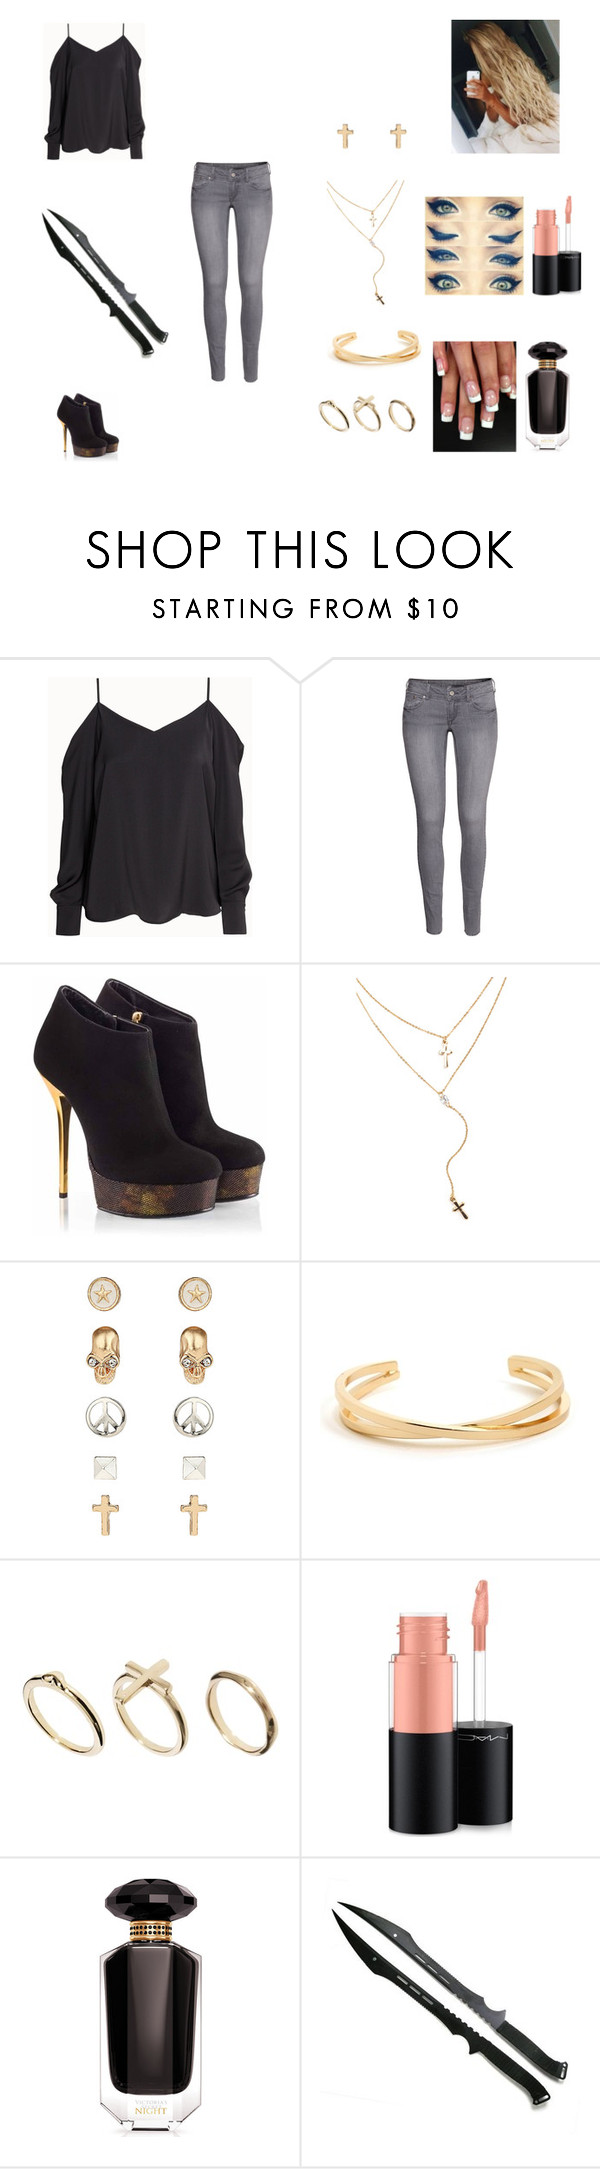 """""""The Archangel #3"""" by jazmine-bowman on Polyvore featuring H&M, Vicini, Topshop, DesignSix, MAC Cosmetics and Victoria's Secret"""